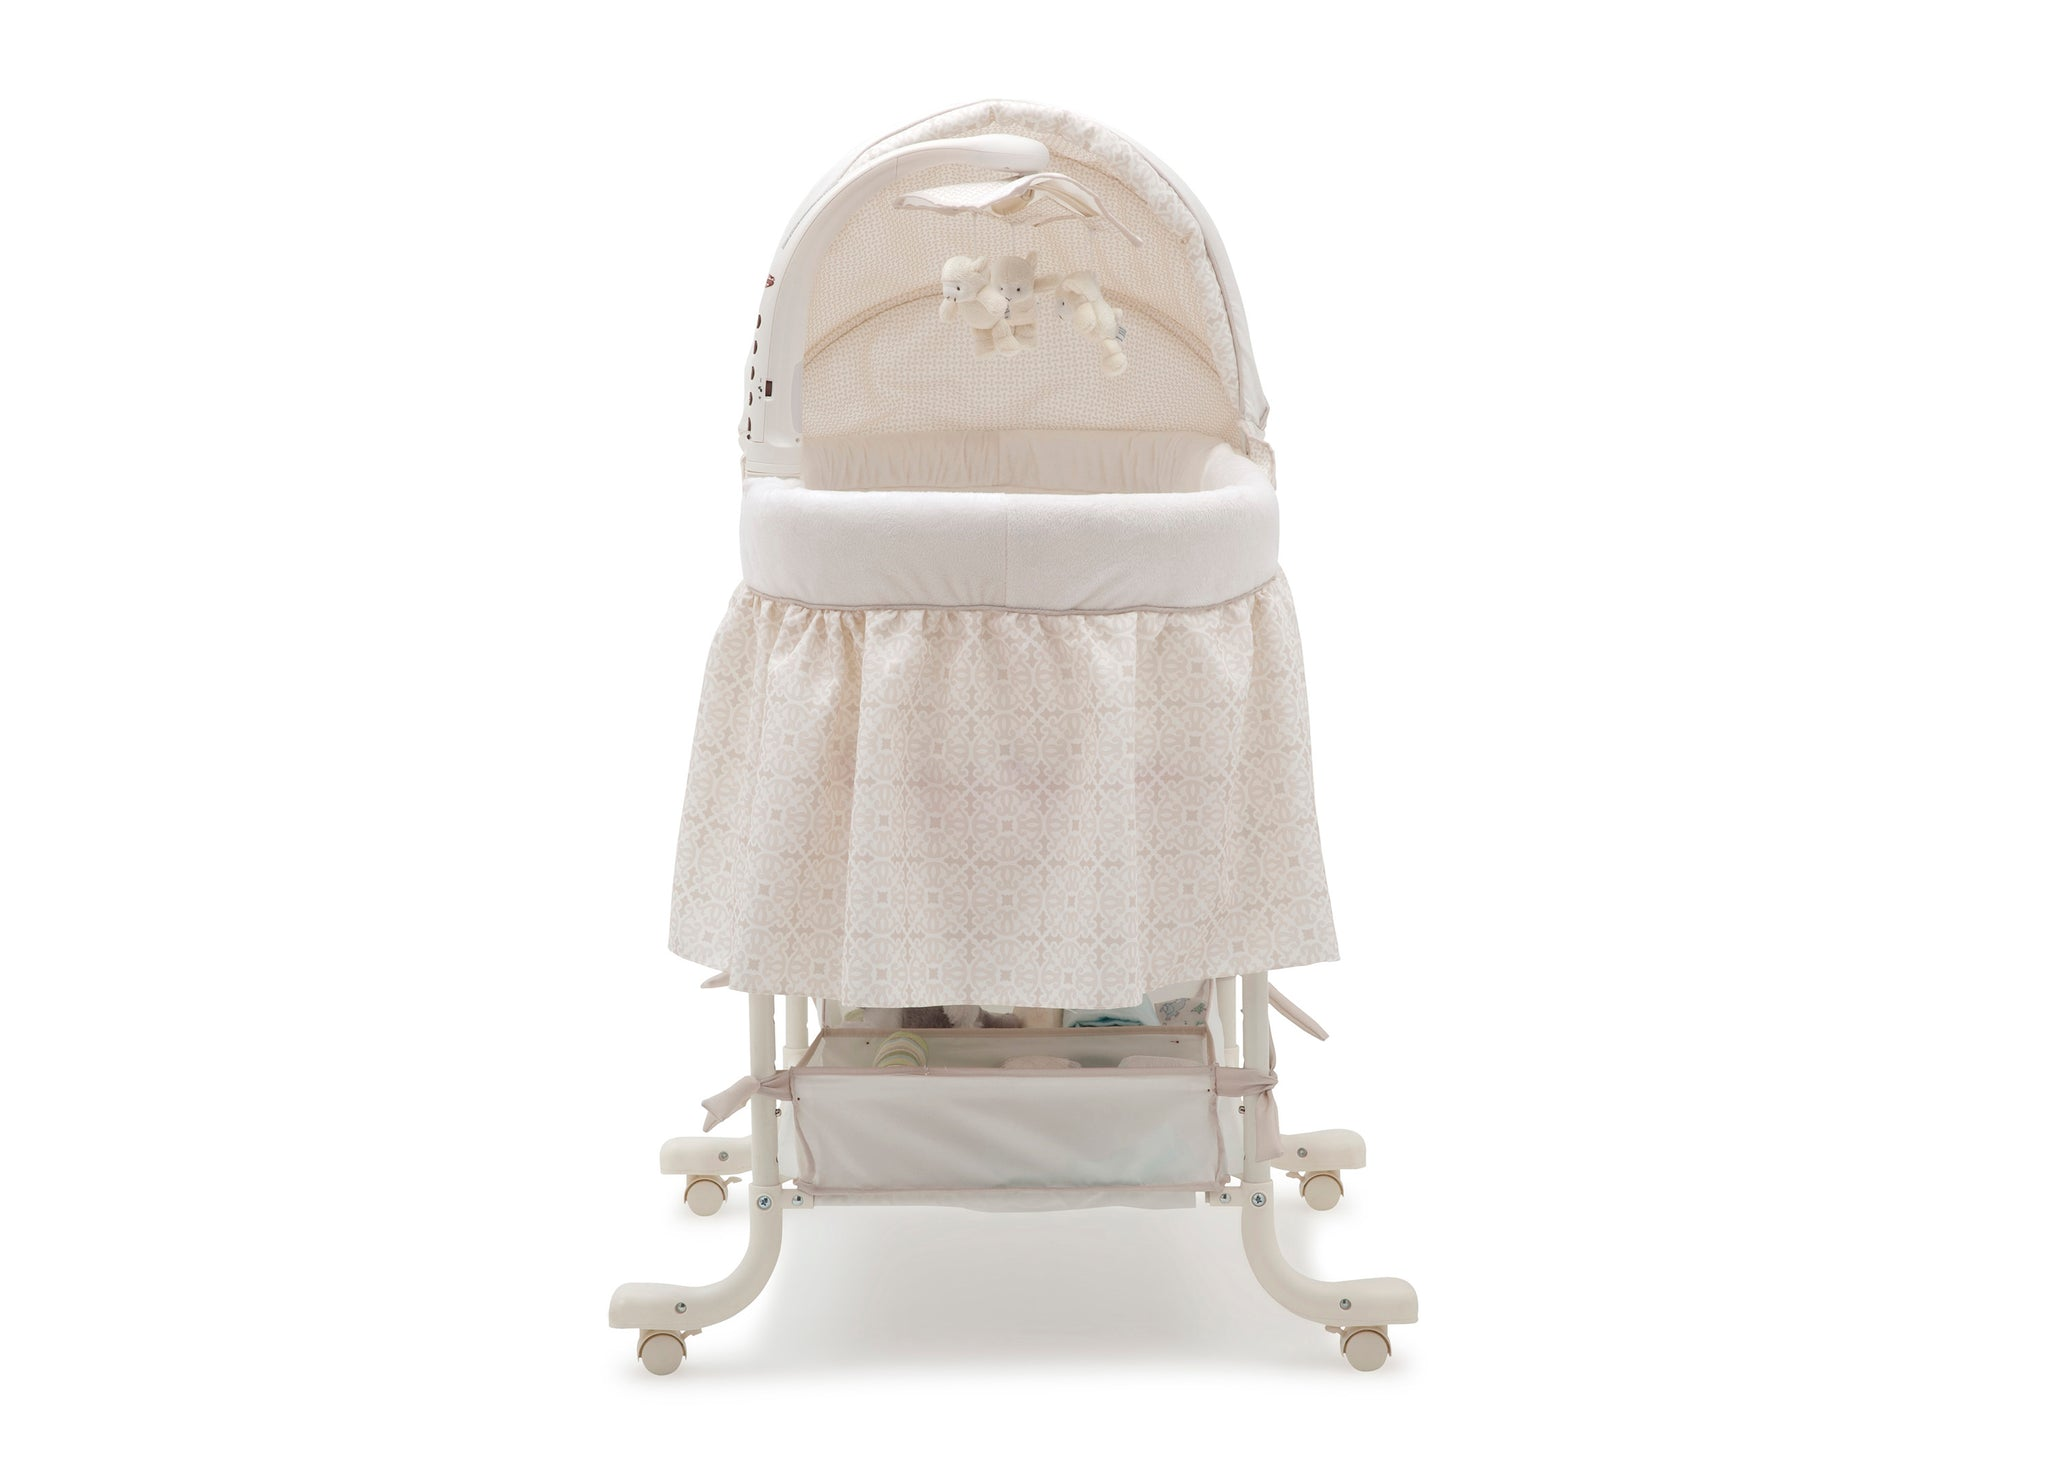 Simmons Kids Sandcastles (293) Deluxe Gliding Bassinet Front Silo View c2c